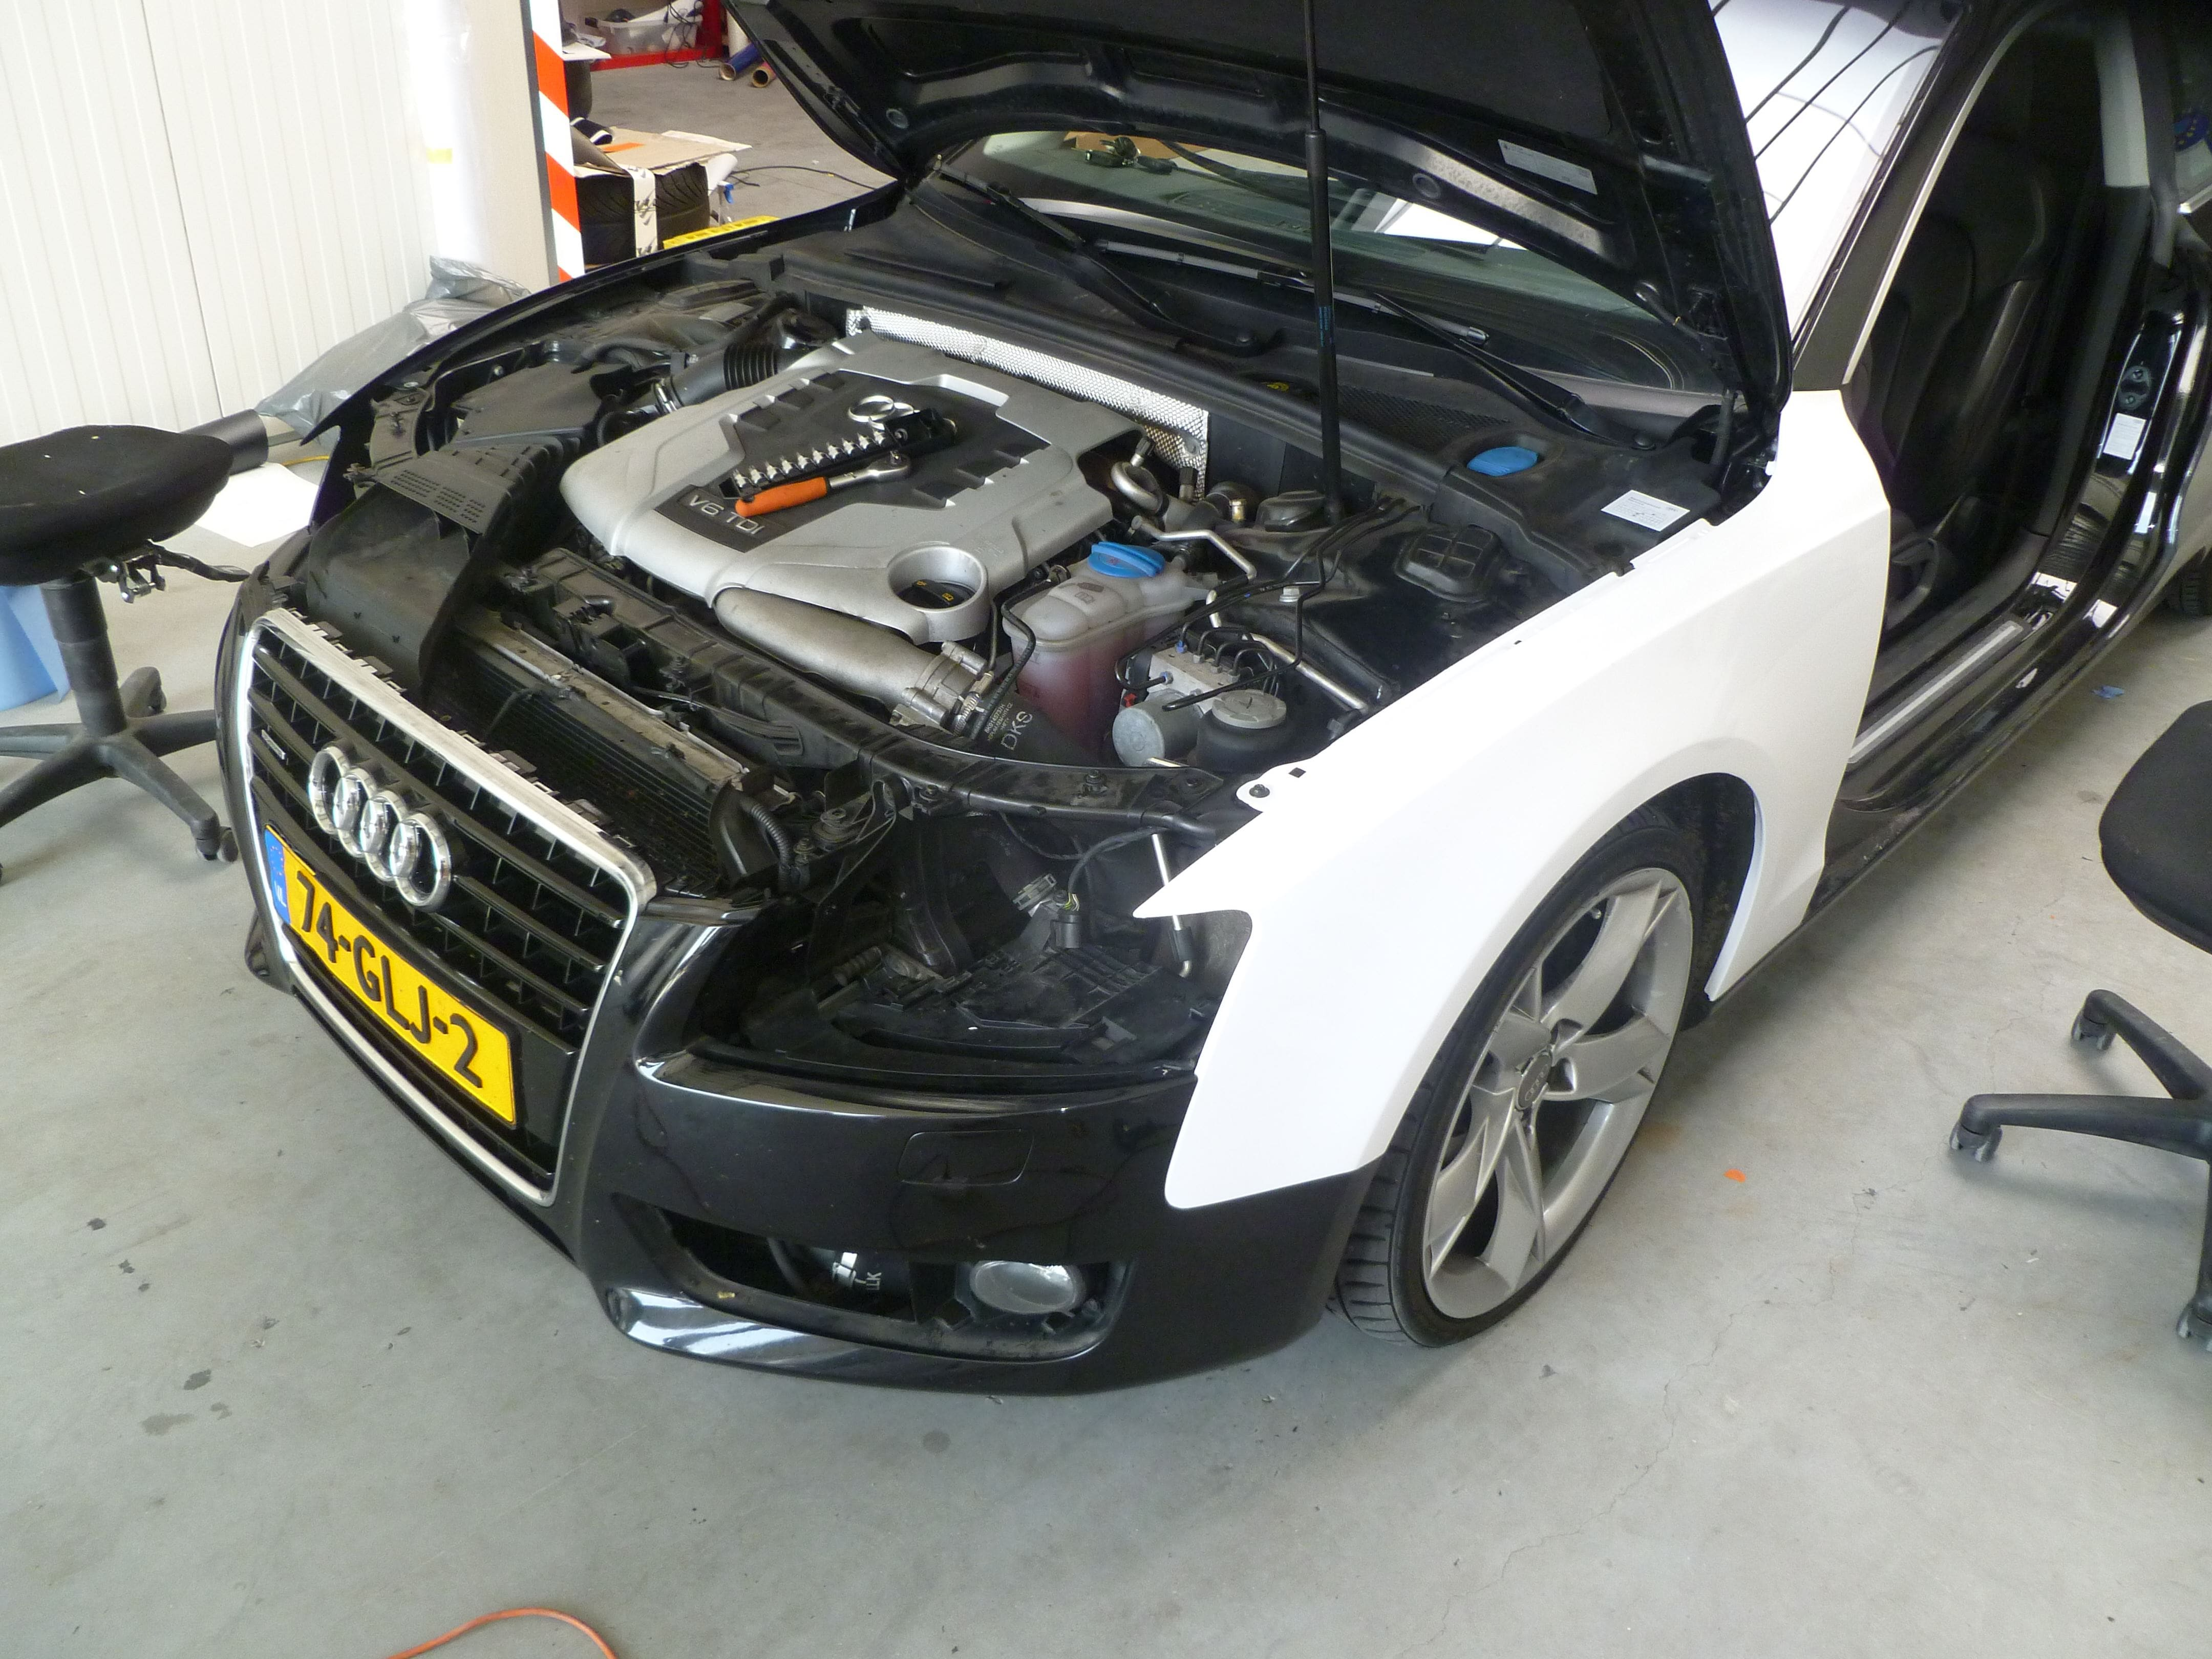 Audi A5 coupe met Metallic Witte Wrap, Carwrapping door Wrapmyride.nu Foto-nr:4685, ©2020